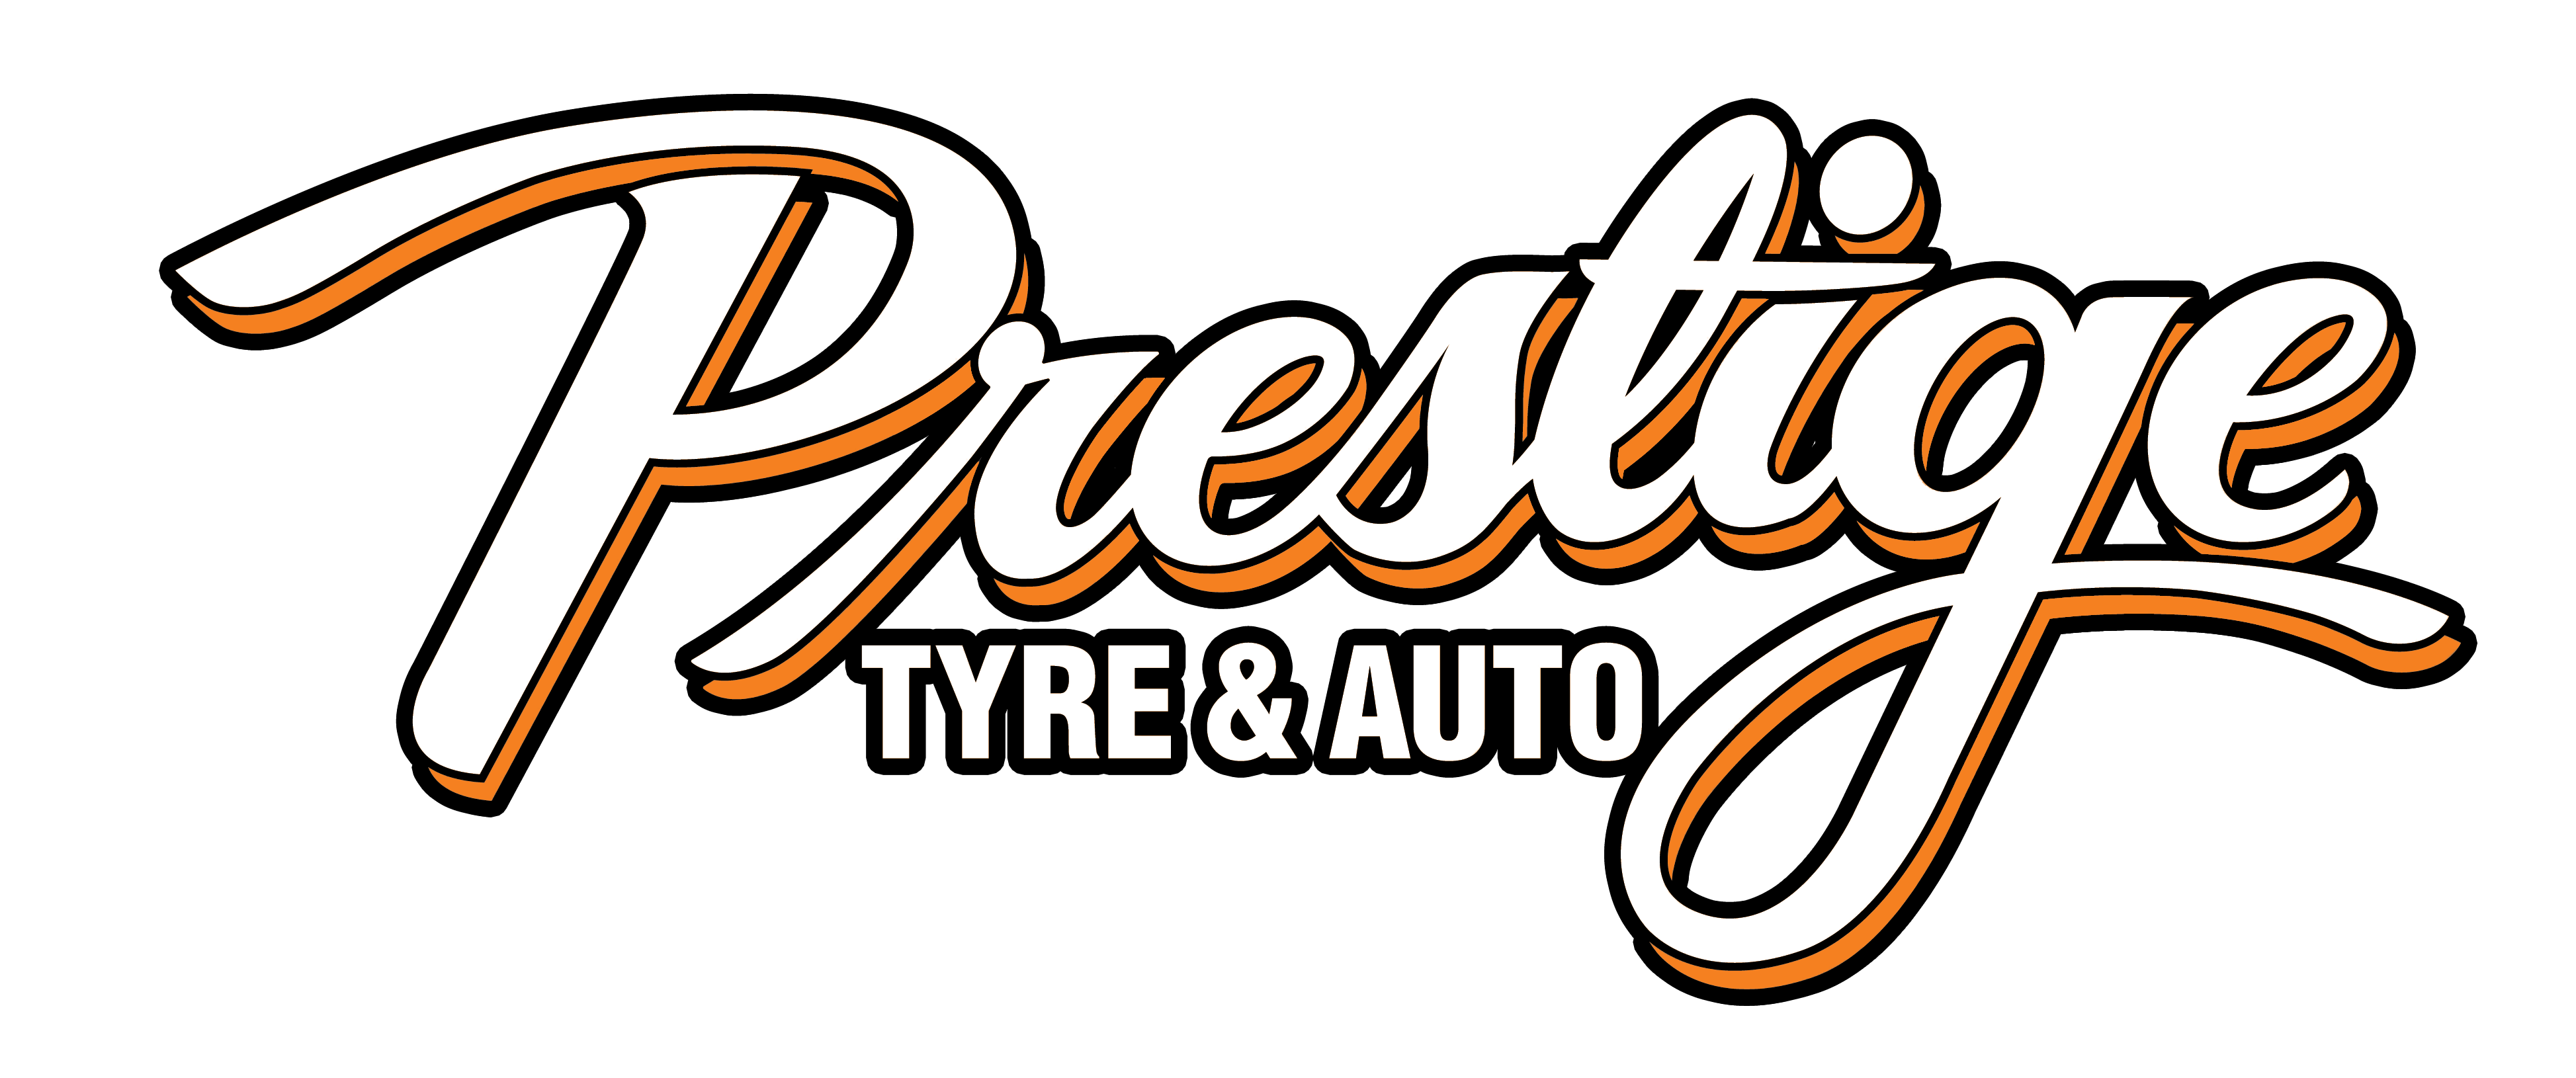 Prestige Tyre and Auto Service